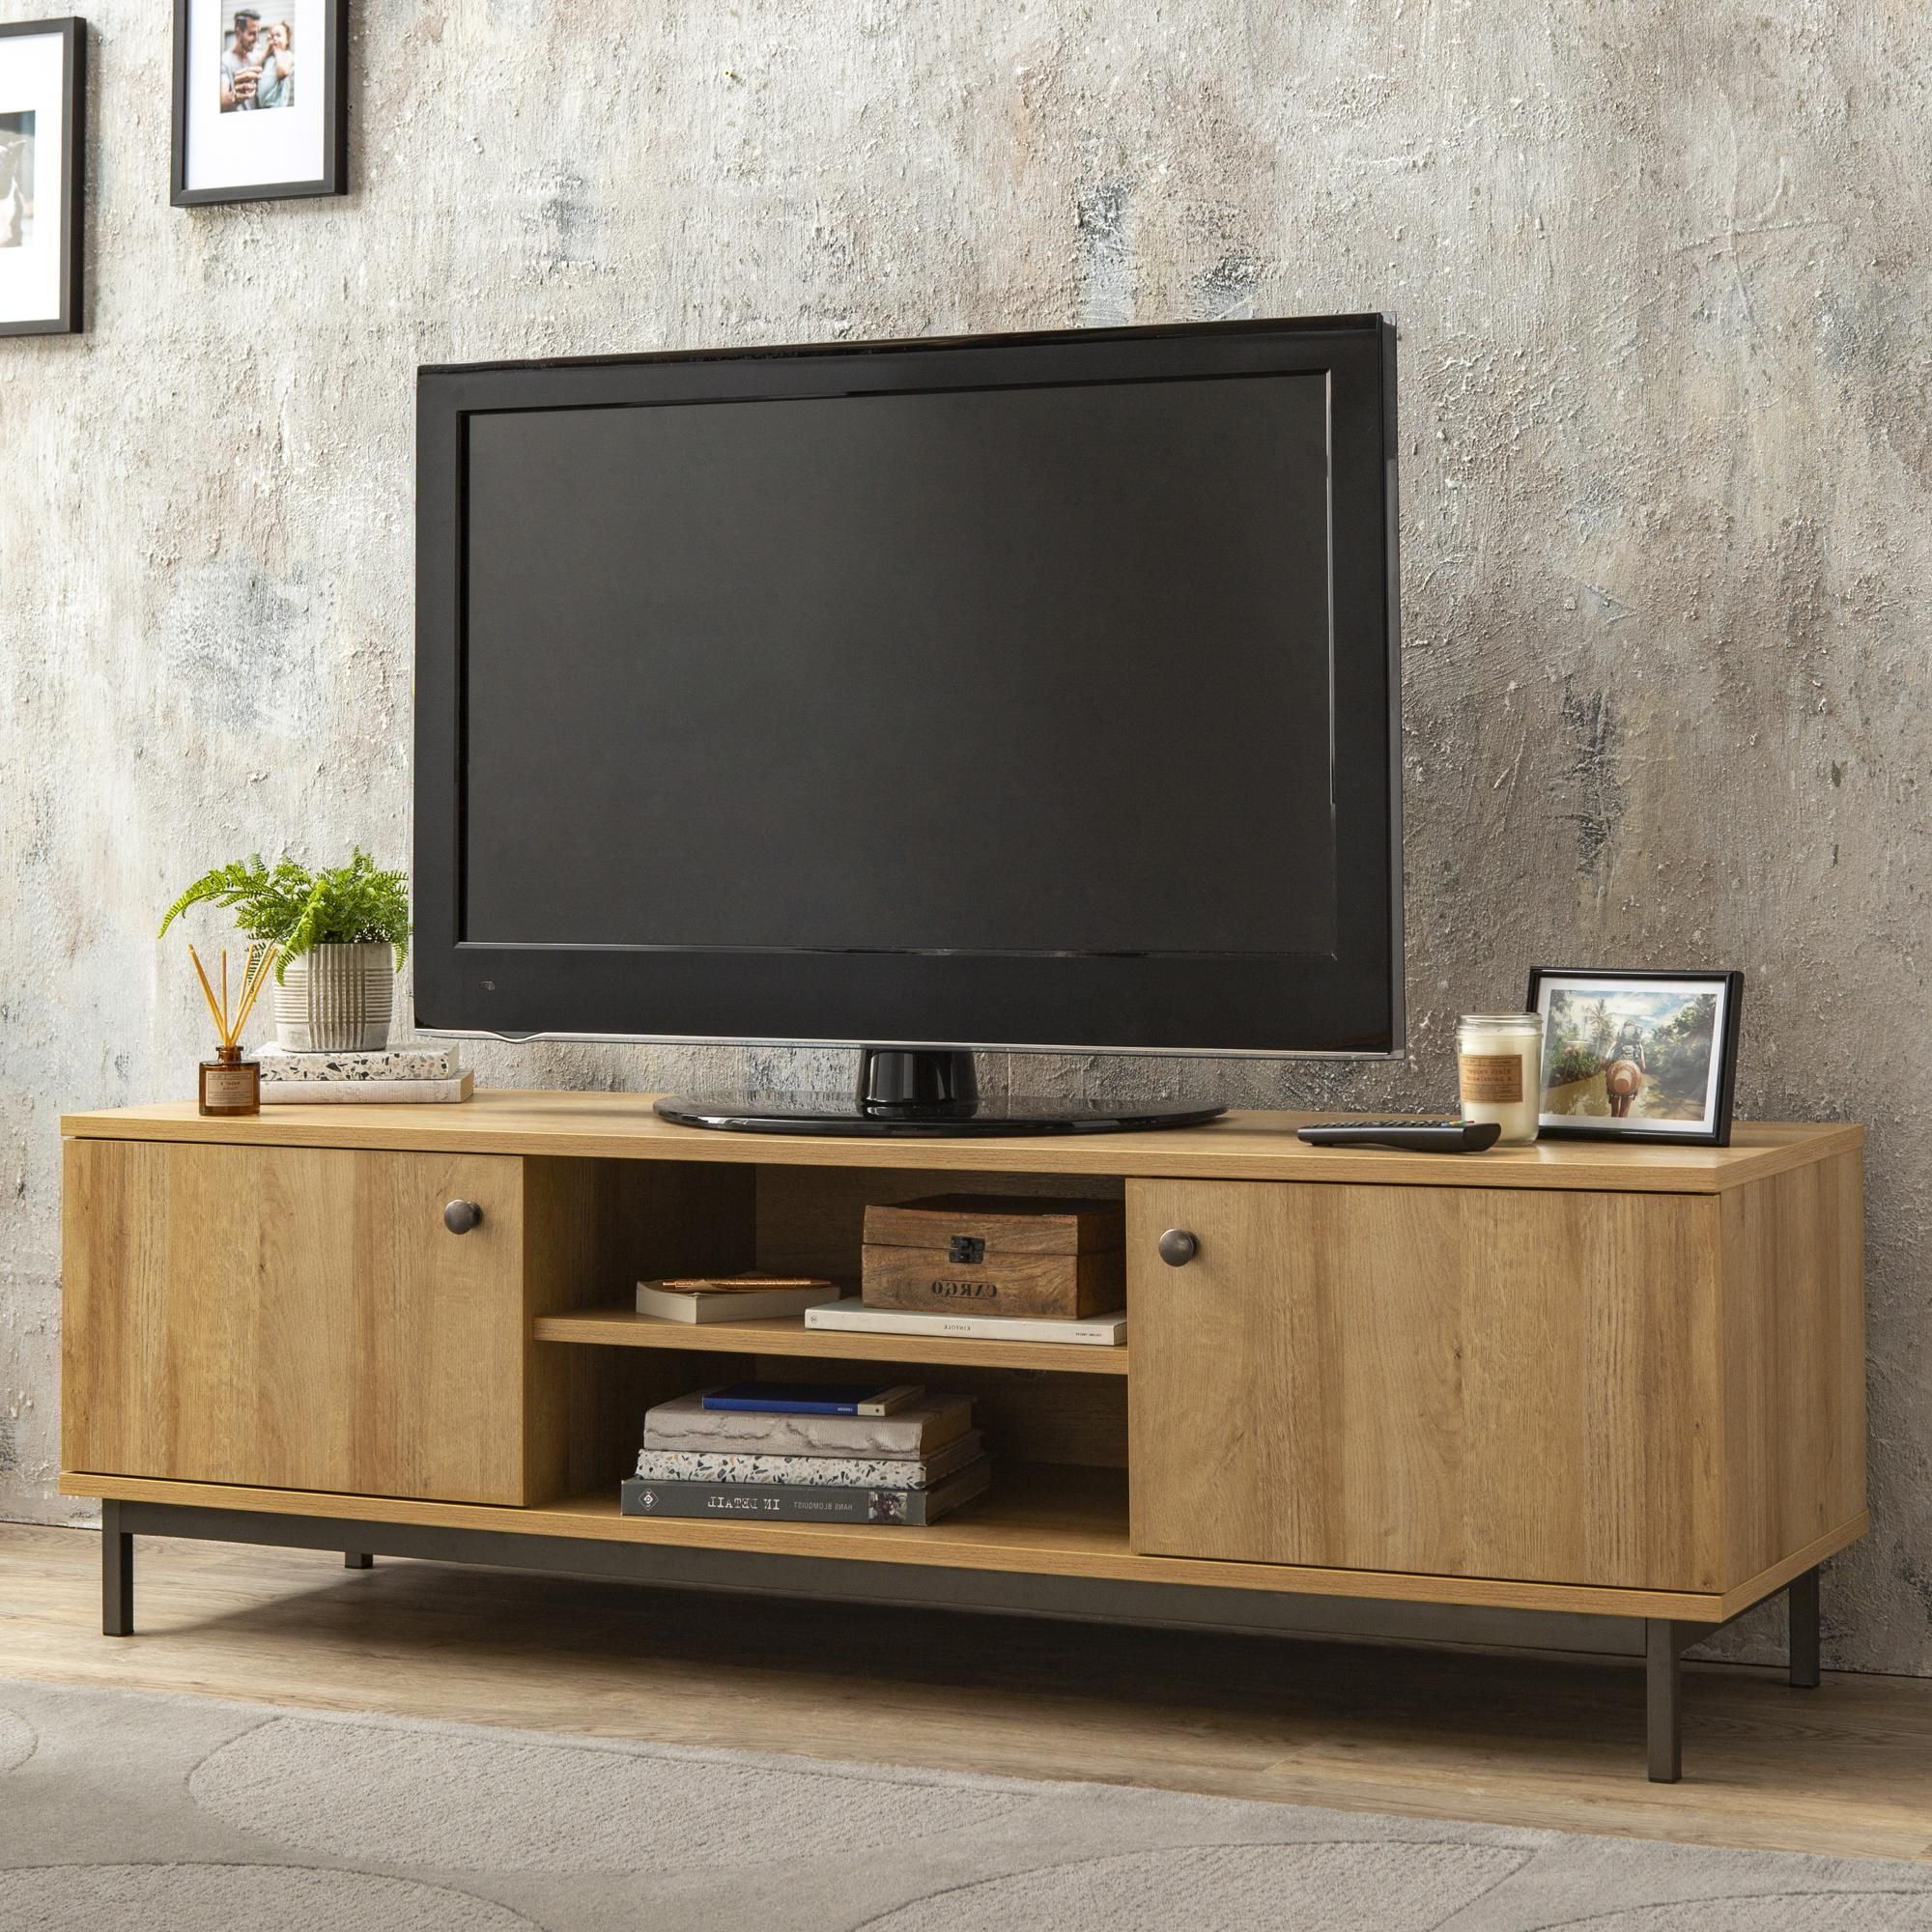 Living Room Tv With Regard To Current Fulton Tv Stands (View 7 of 10)